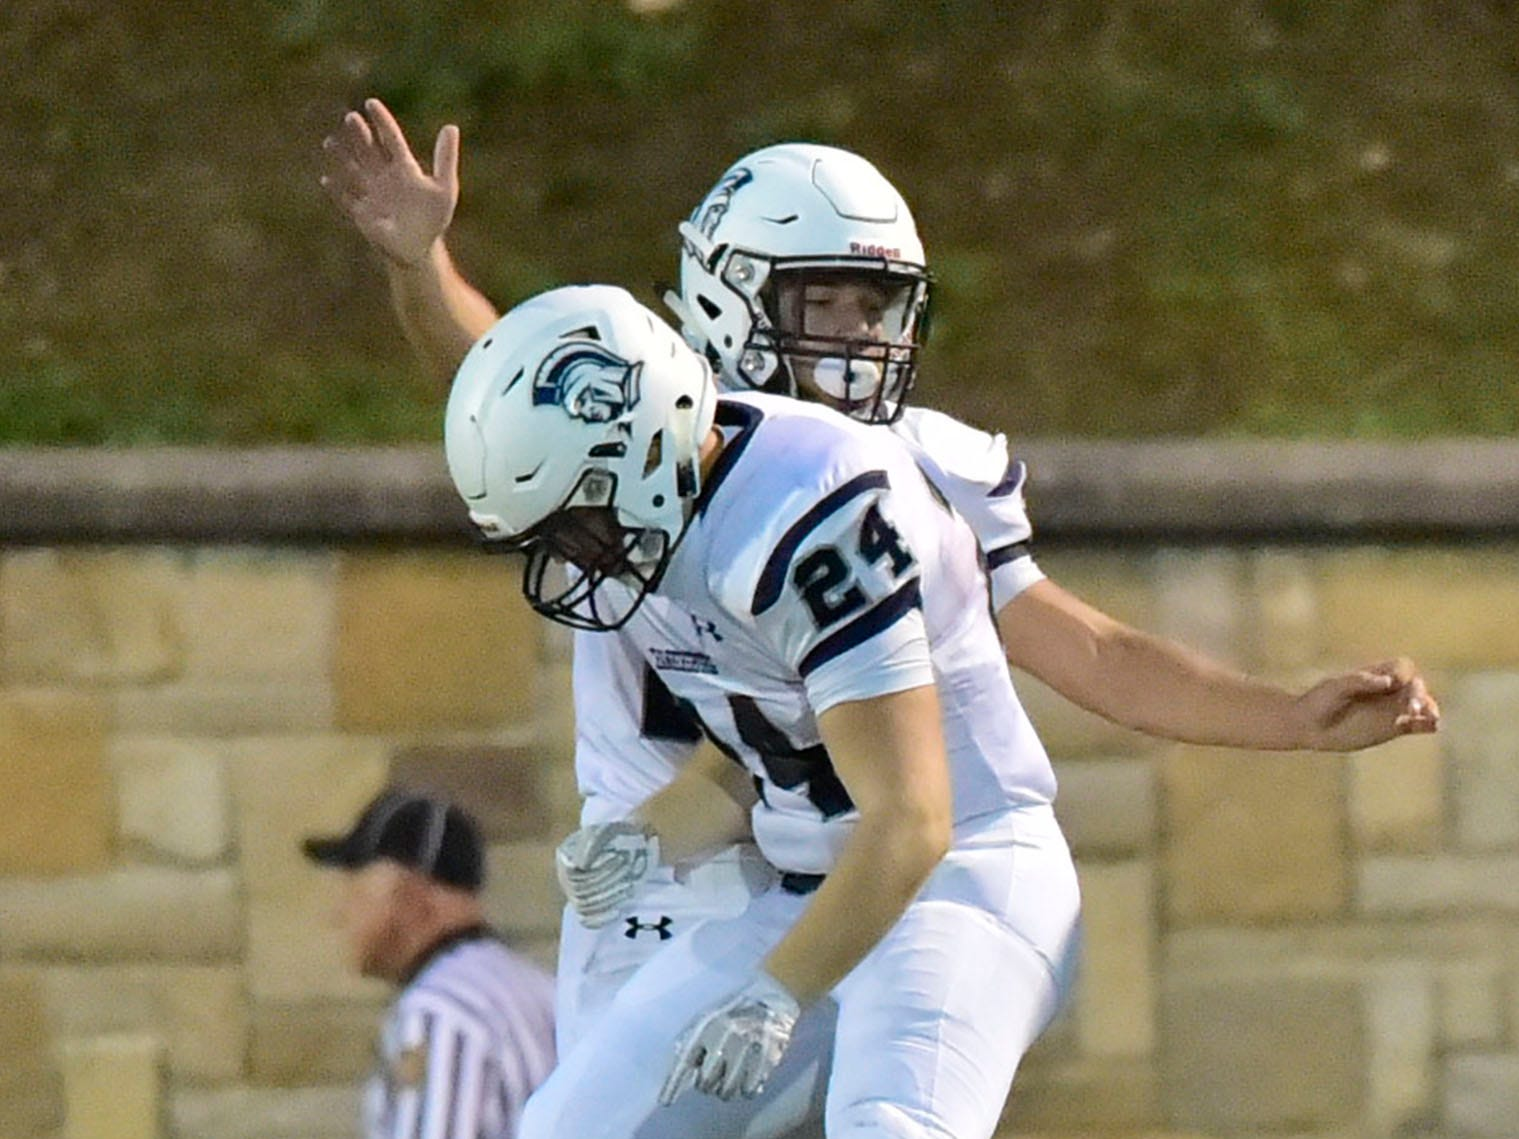 Chamberburg's teammates Kyere Morton and Andrew Shetter (24) celebrate a score. Chambersburg, 4-0 suffered their first loss of the season against undefeated State College in PIAA road game on Friday, Sept. 21, 2018.